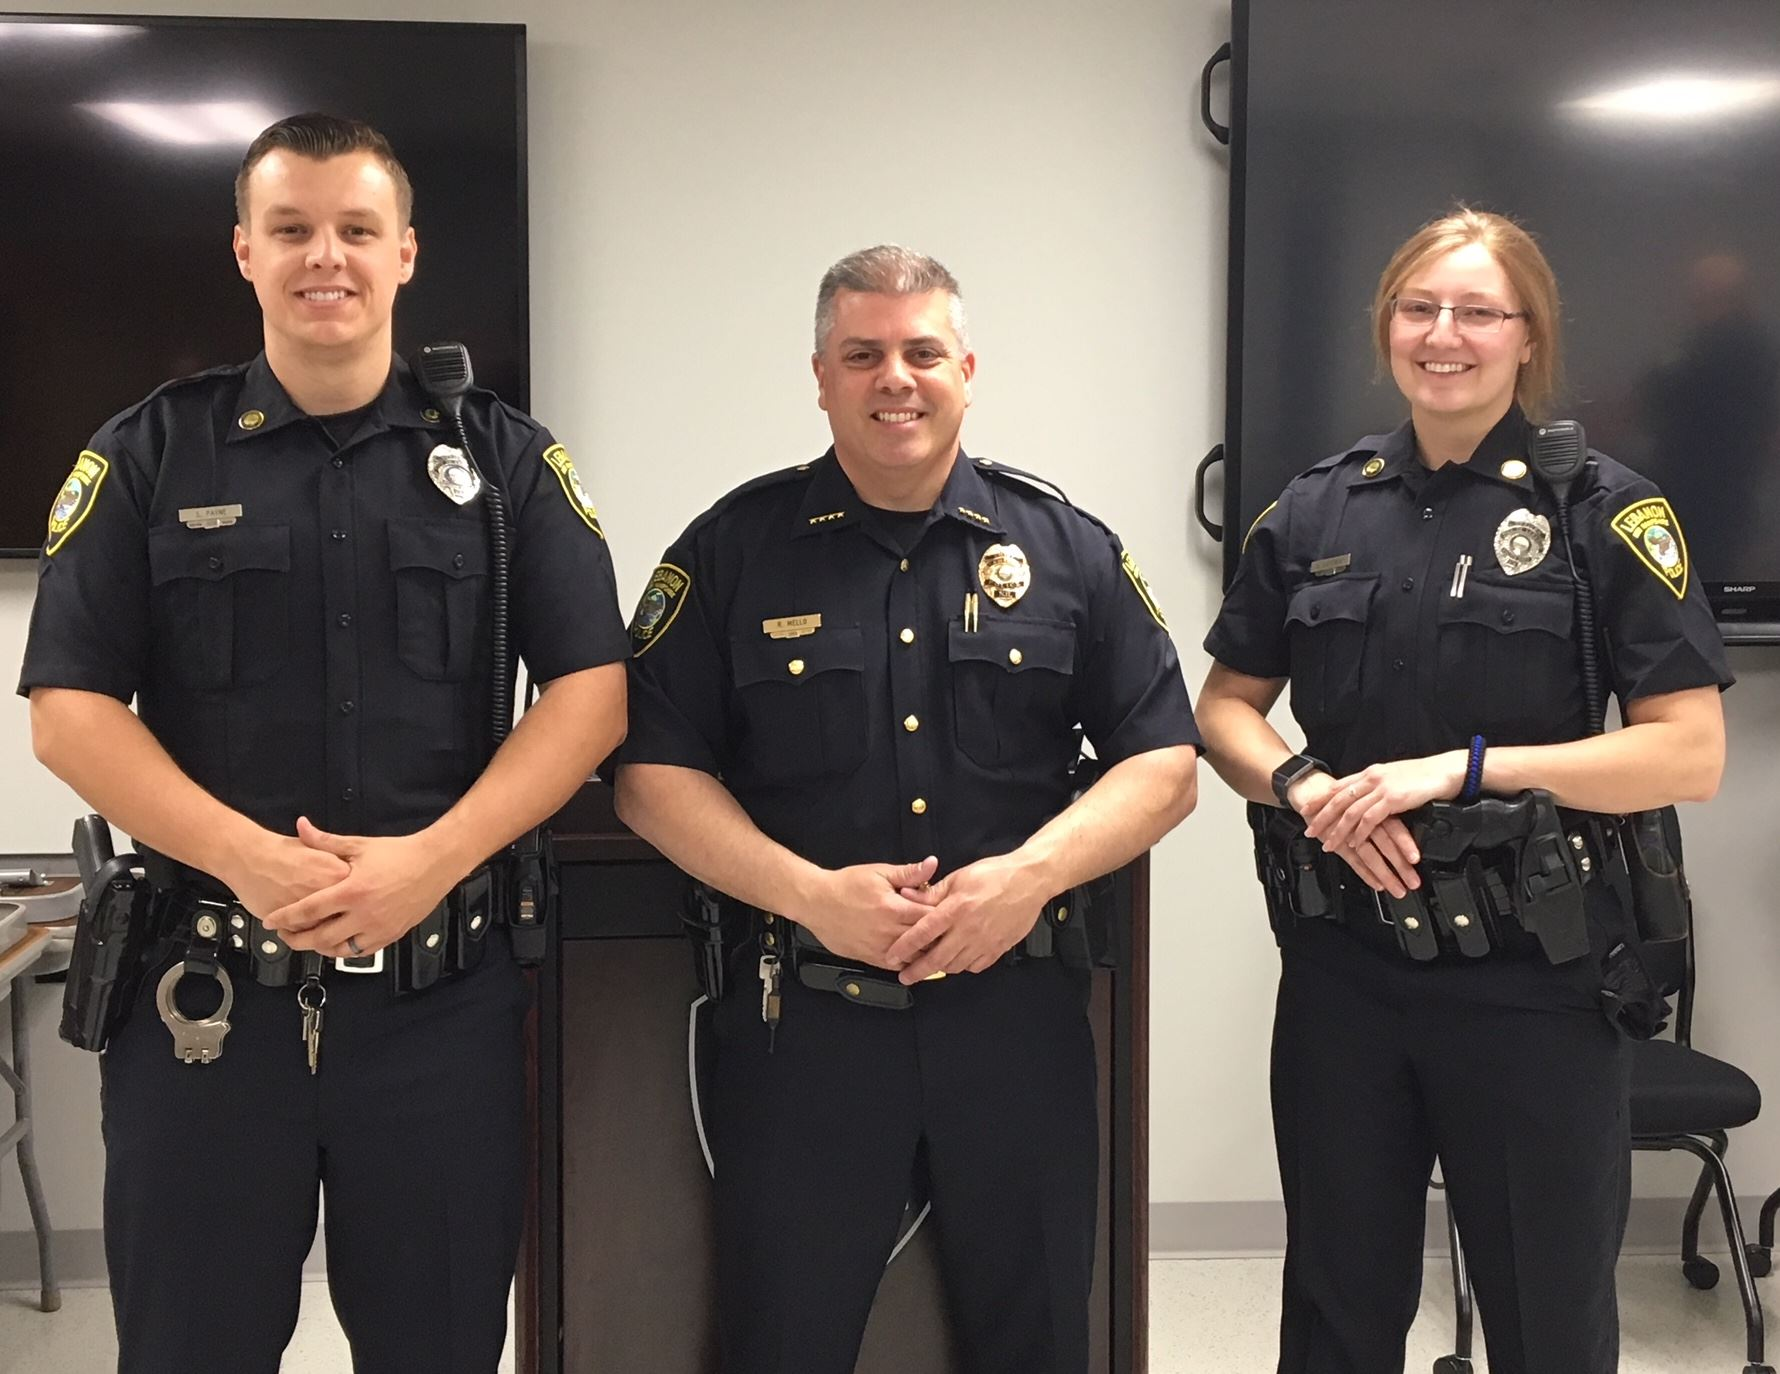 Officer Payne, Chief Mello, Officer Corcoran standing together